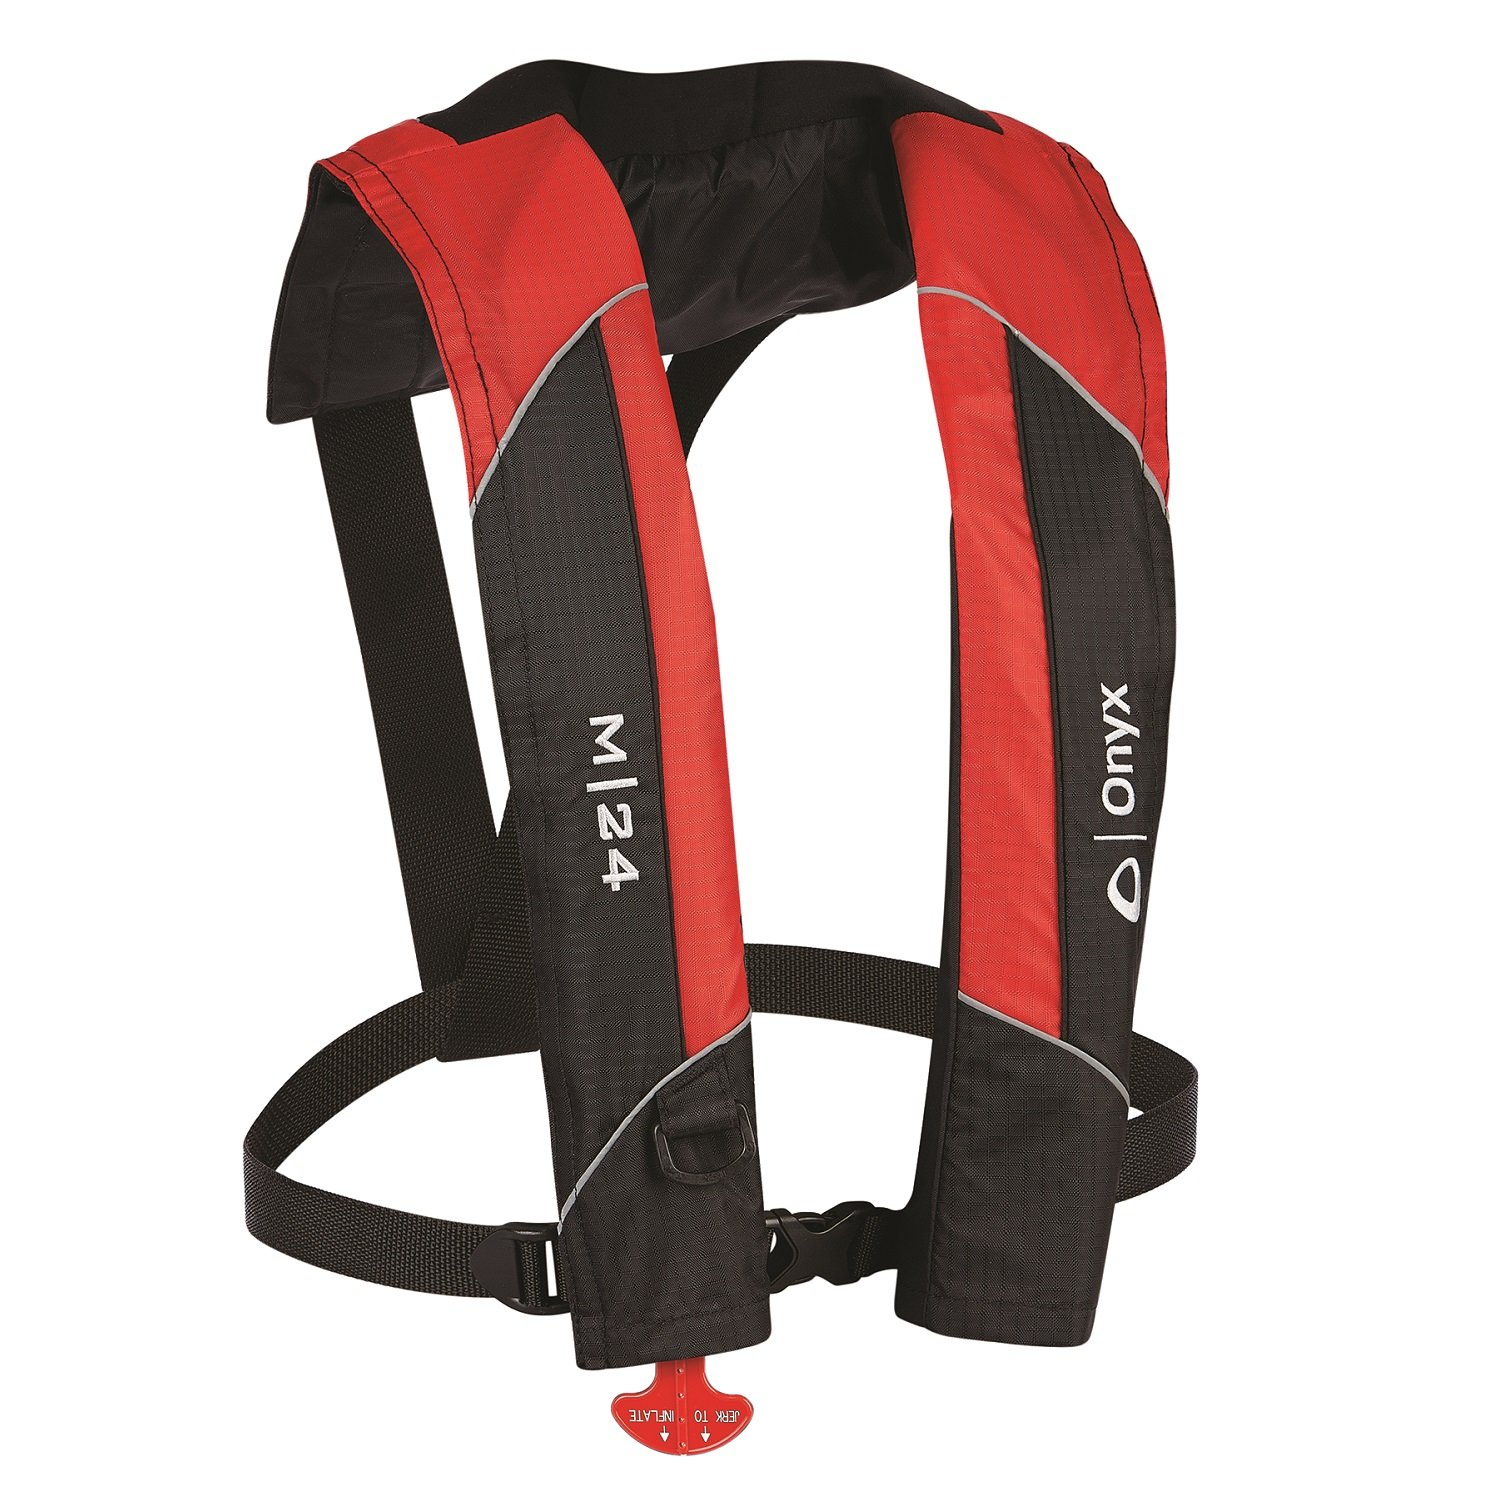 Onyx M-24 Manual Inflatable Vest, Red by Onyx